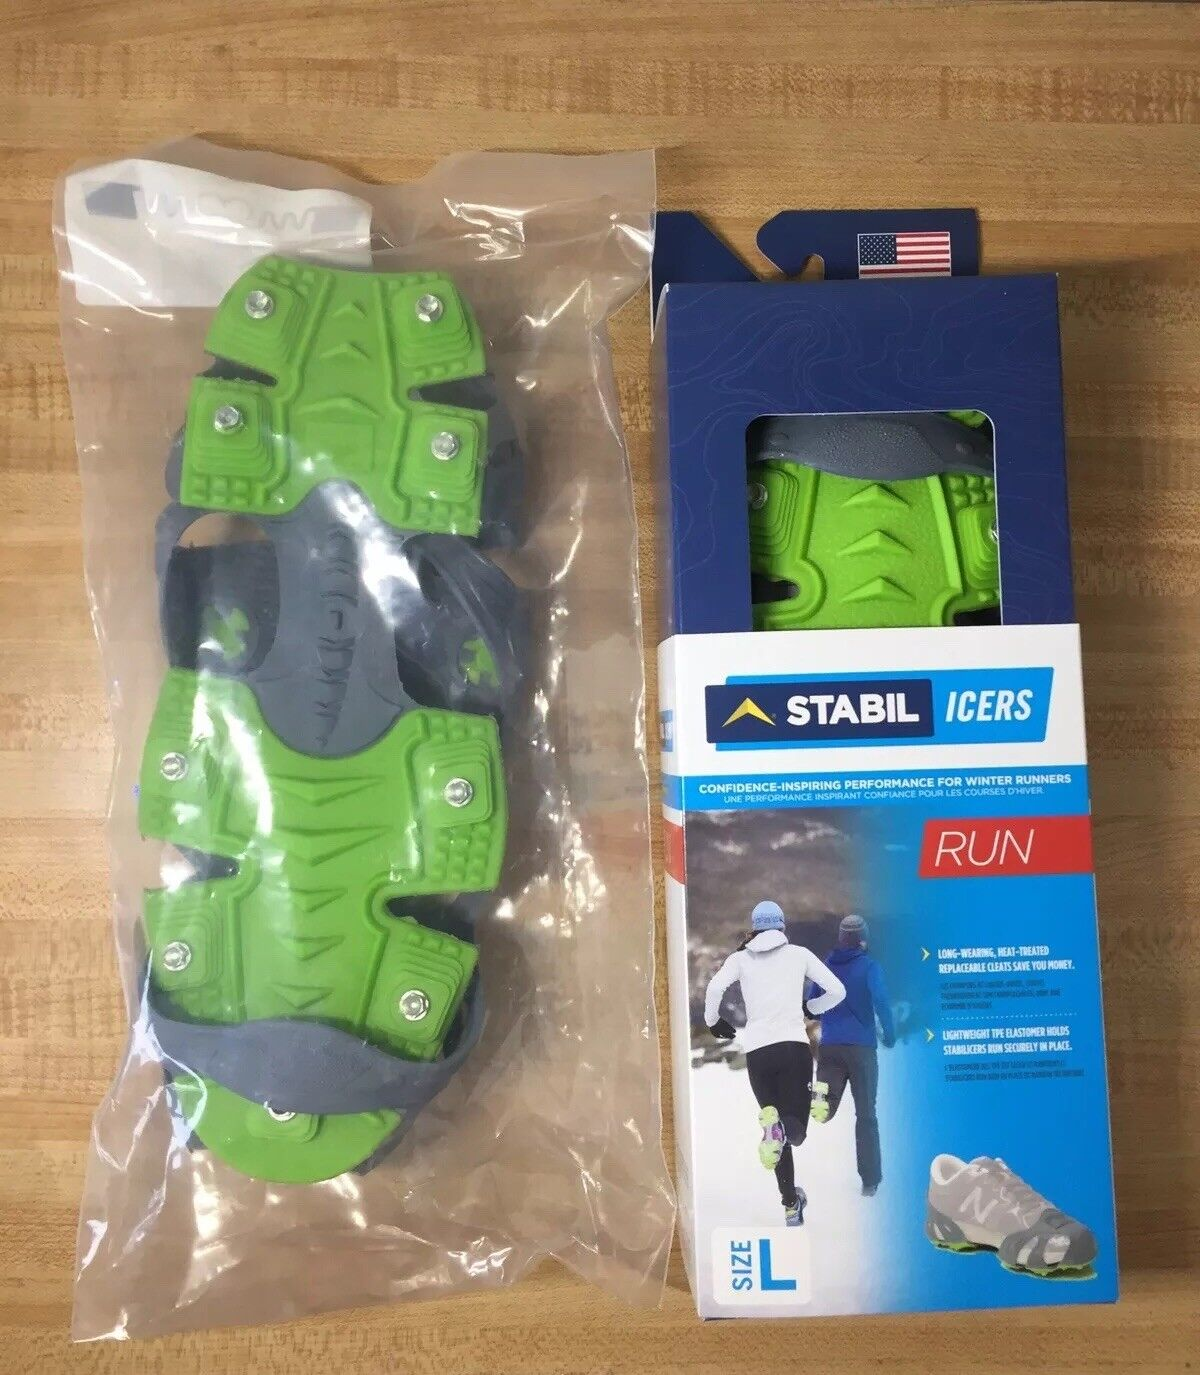 Stabil Icers Ice Cleats Winter Snow And  Ice Cleats Made In USA  retail stores